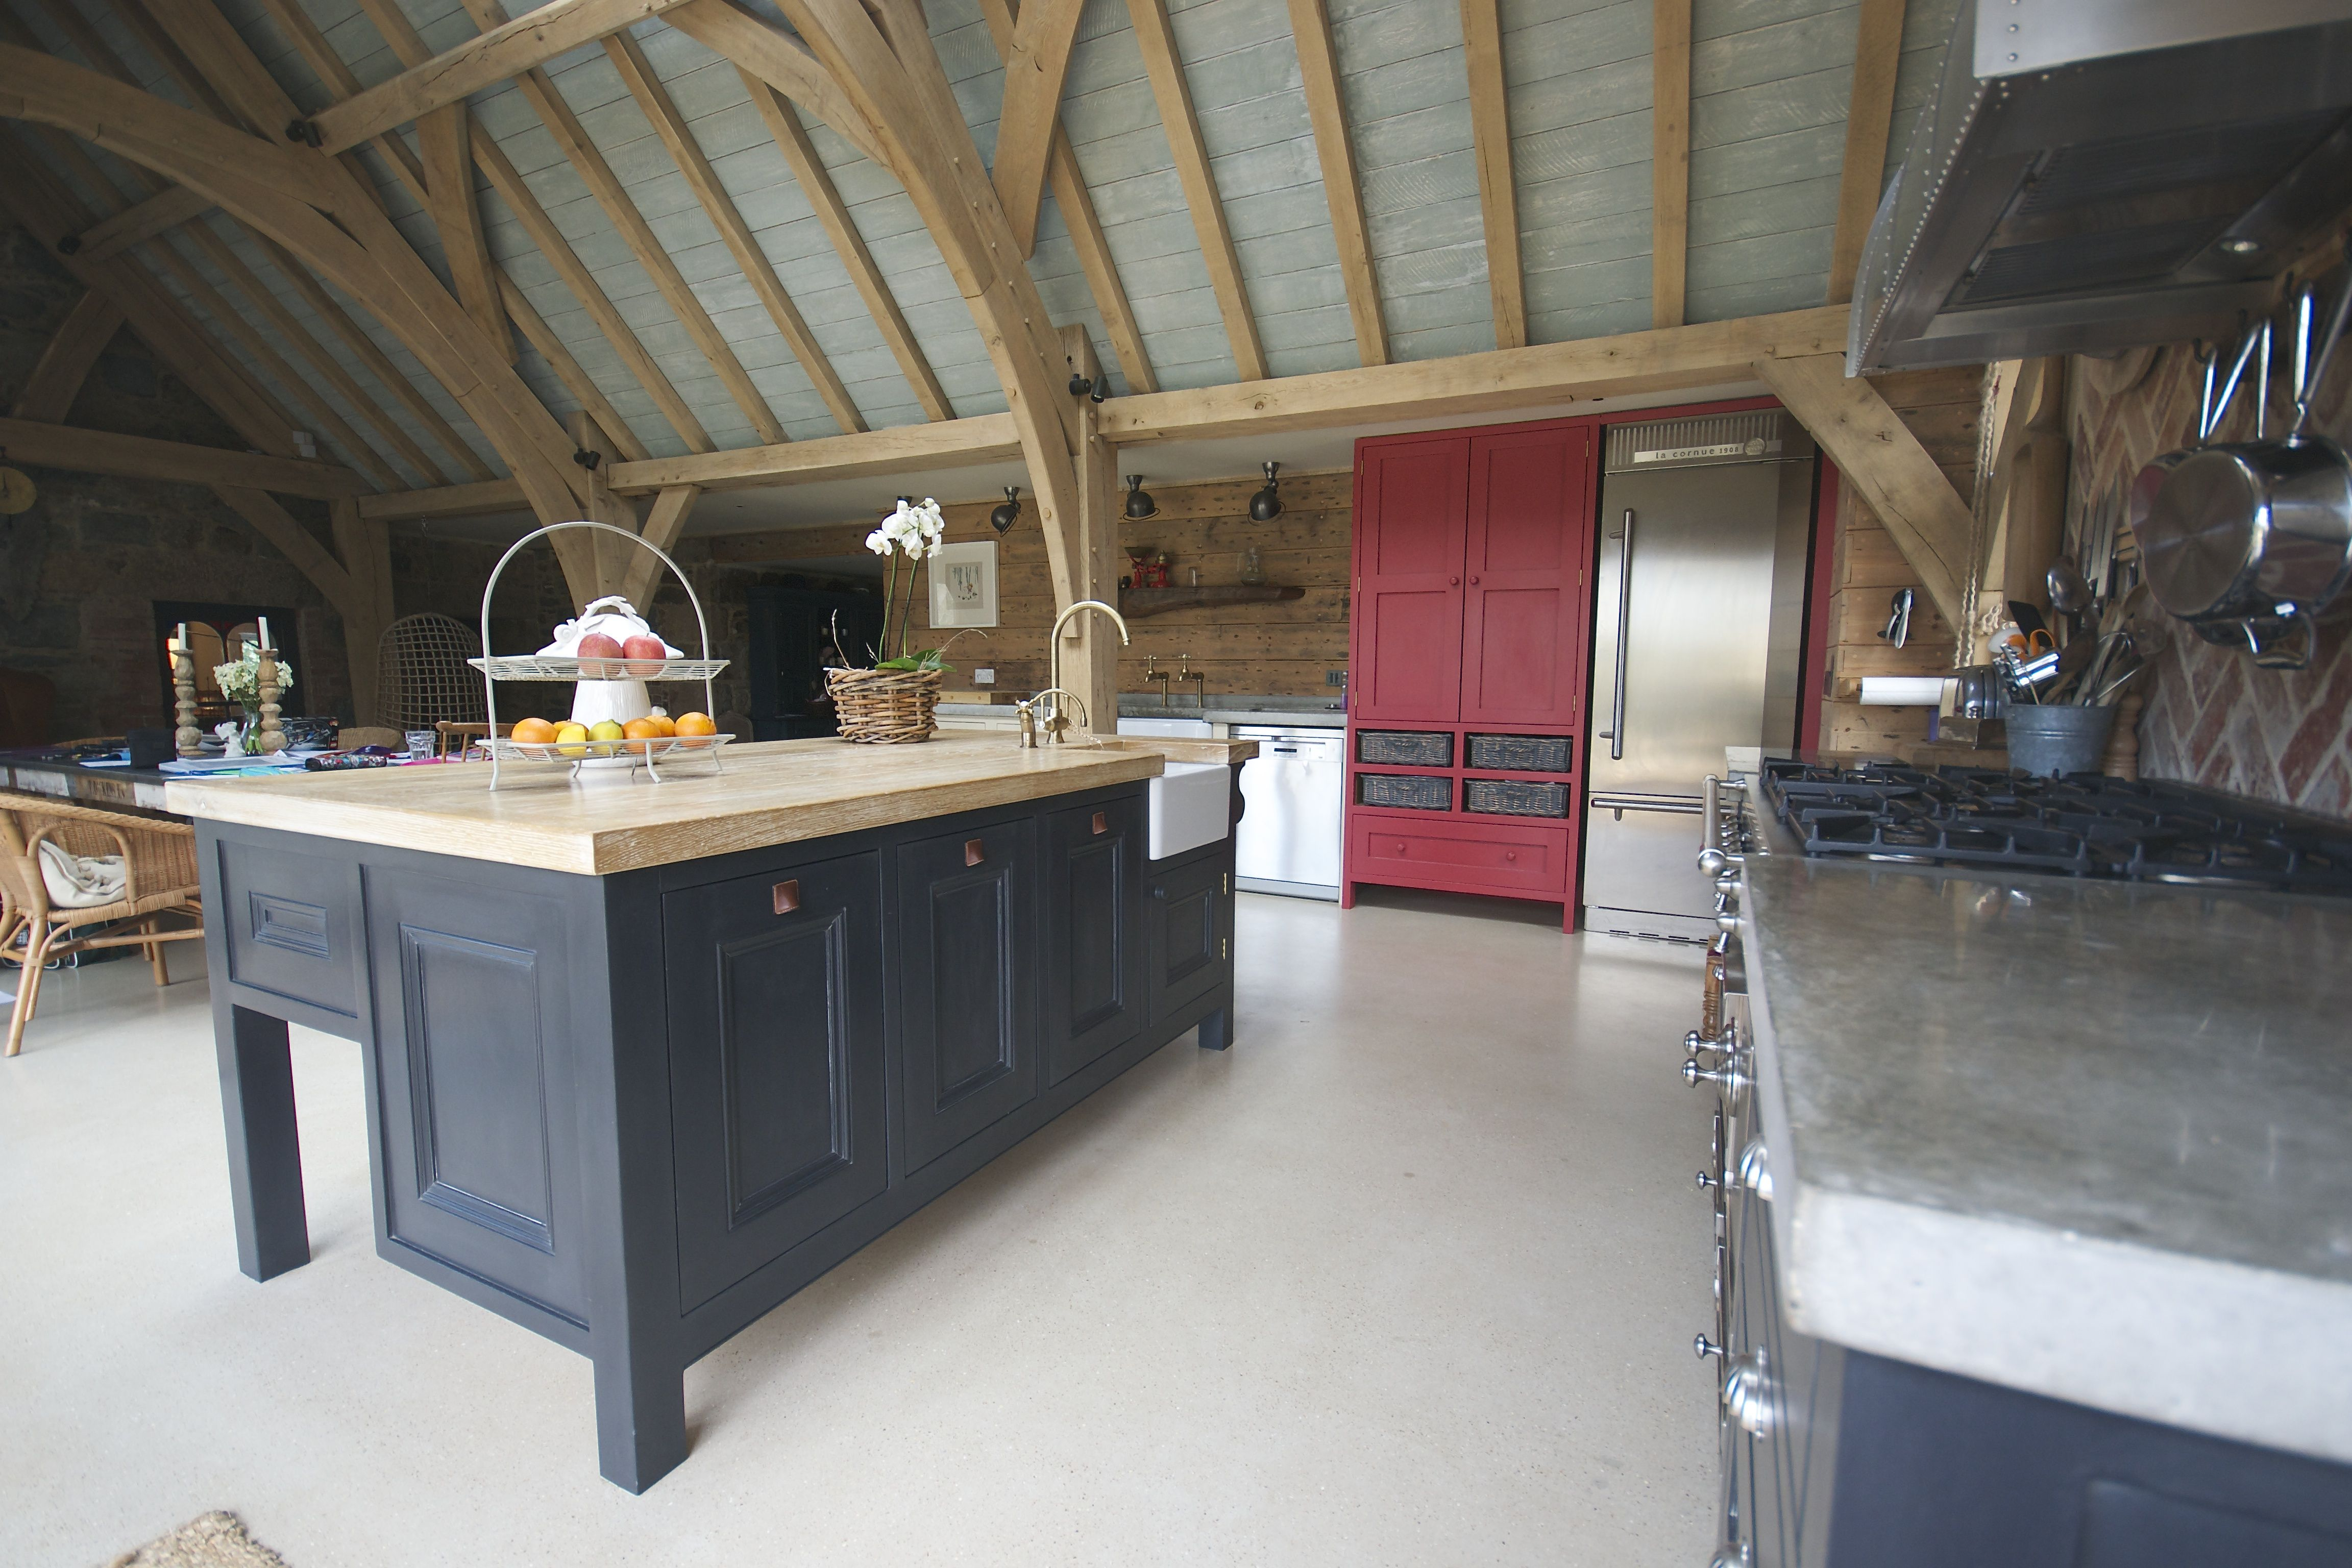 Bespoke Kitchen Island Guernsey Hand Painted Annie Sloane Graphite Waxed Limed